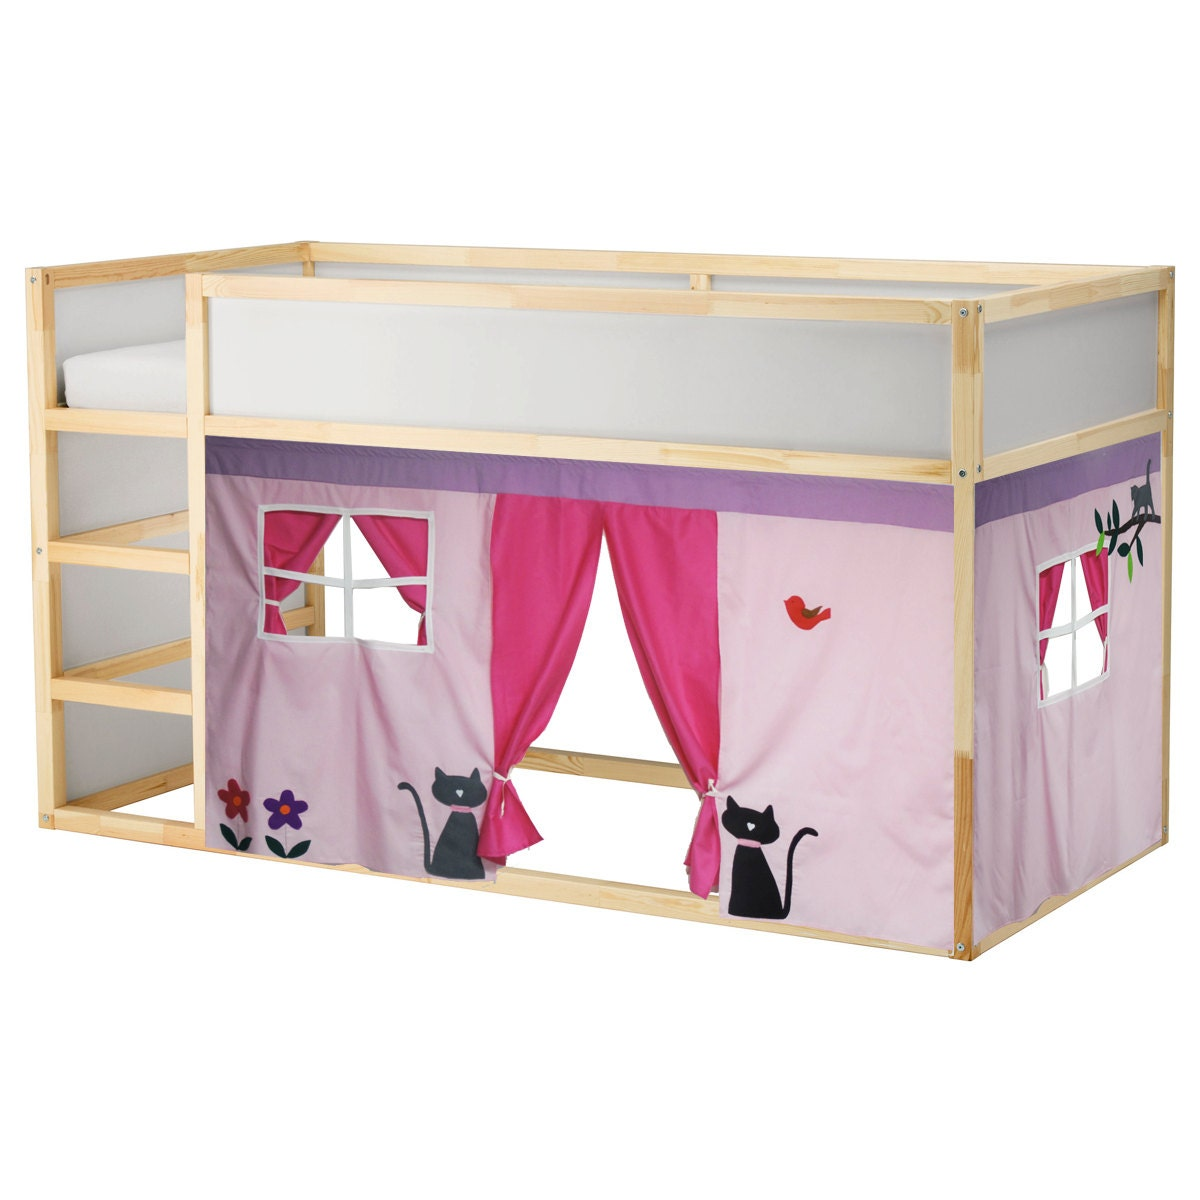 Loft bed curtain 28 images curtain under loft bed Twin bed tent ikea